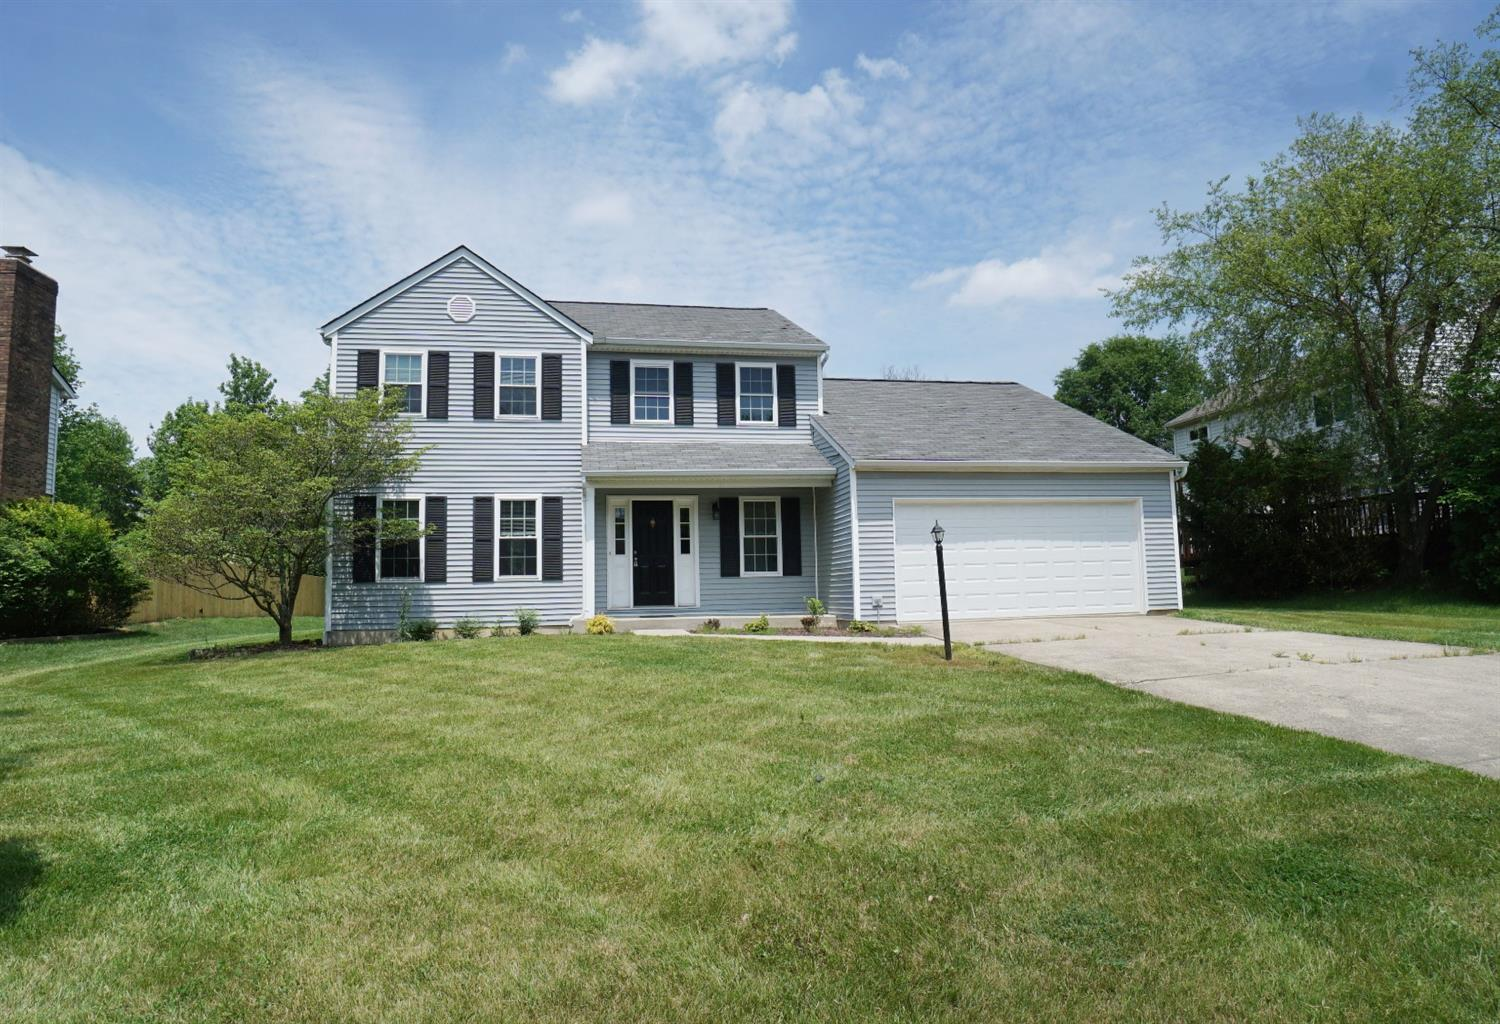 Deerfield Township, OH Real Estate For Sale